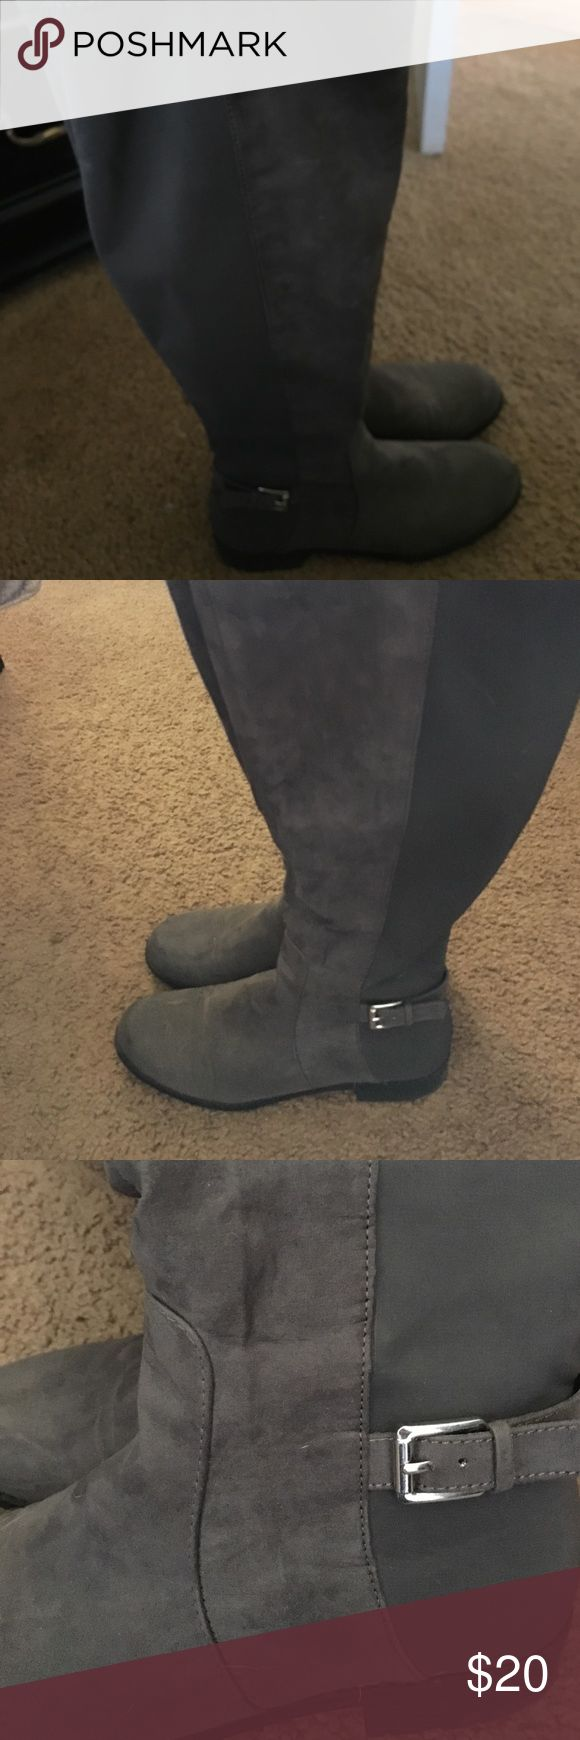 Grey knee high boots Grey knee high with silver buckle accent. 20 inches tall Shoes Over the Knee Boots